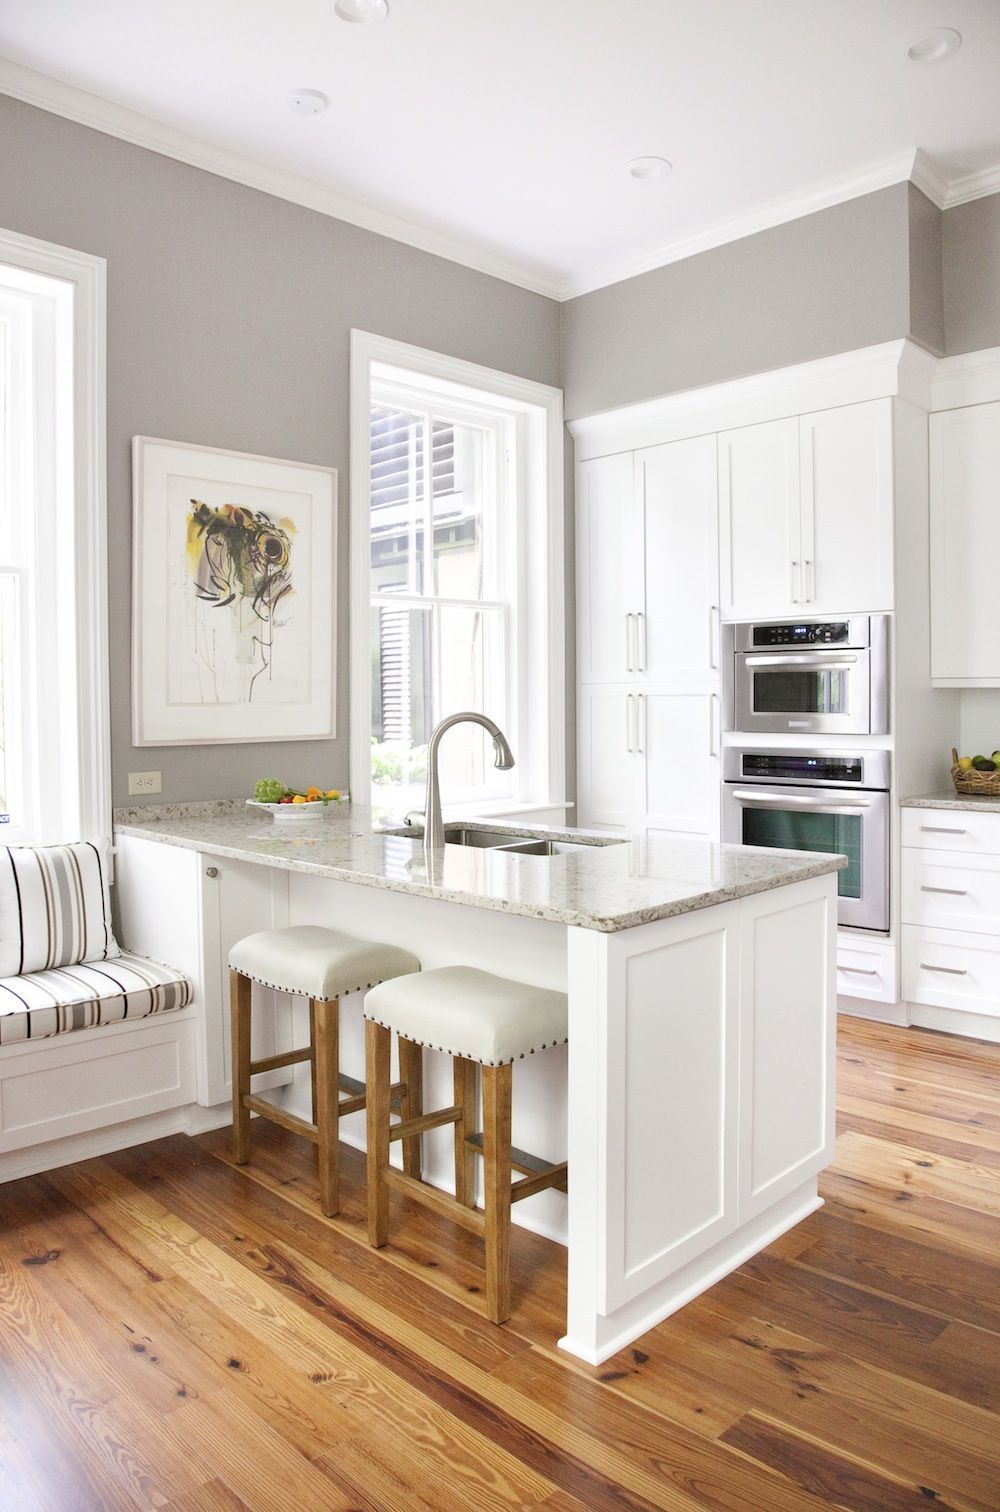 find more ideas diy small kitchen remodel on a budget dark small rh pinterest it